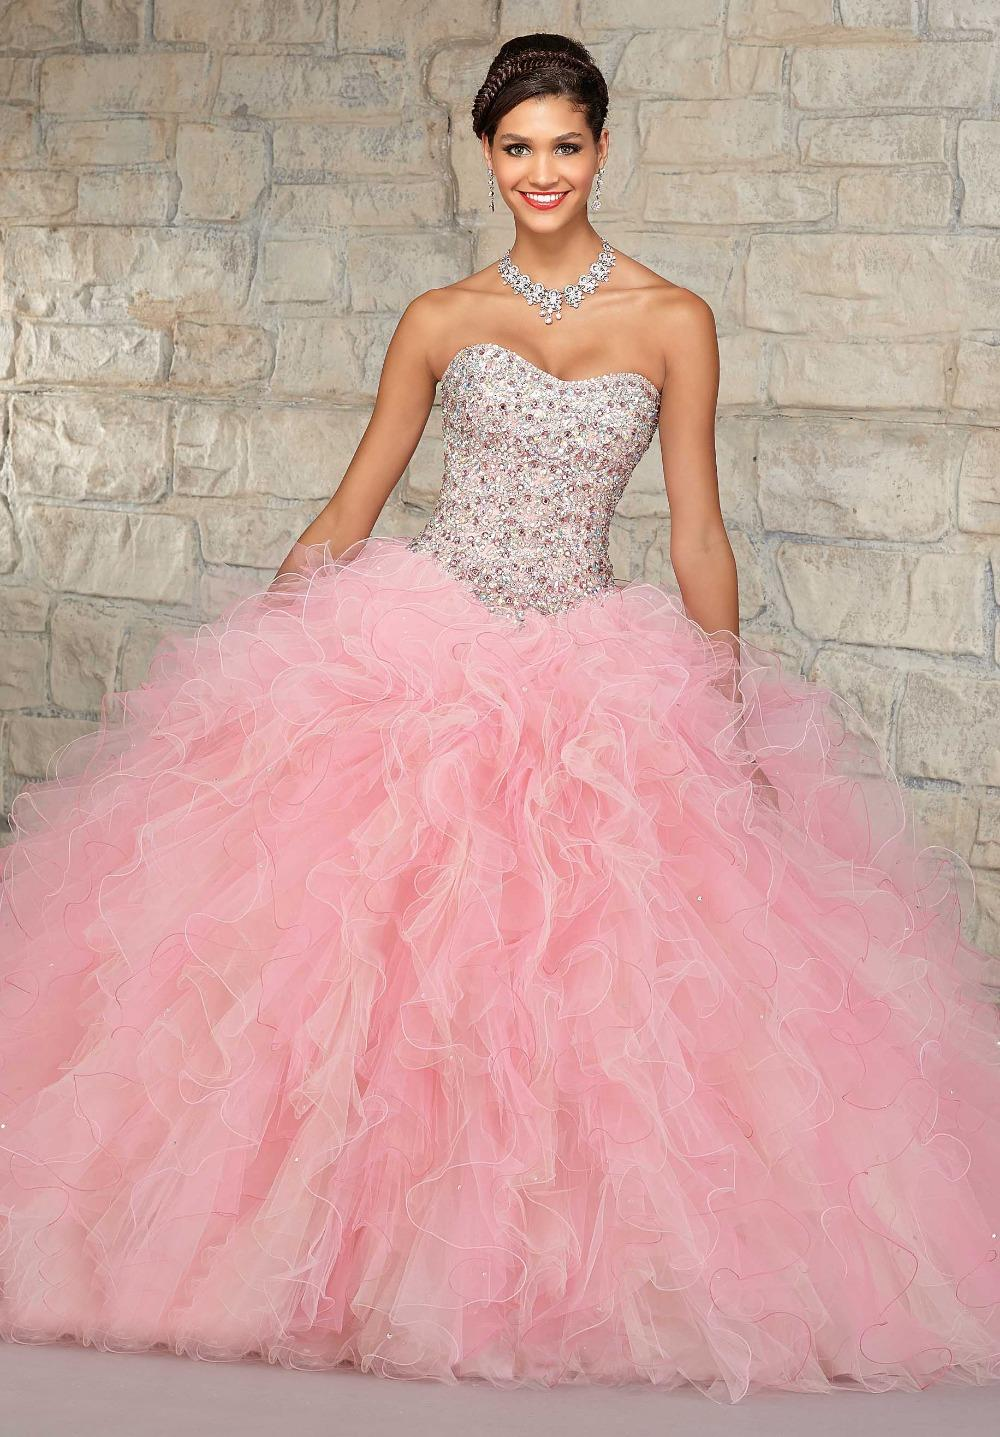 dress quinceanera page 25 - Dress